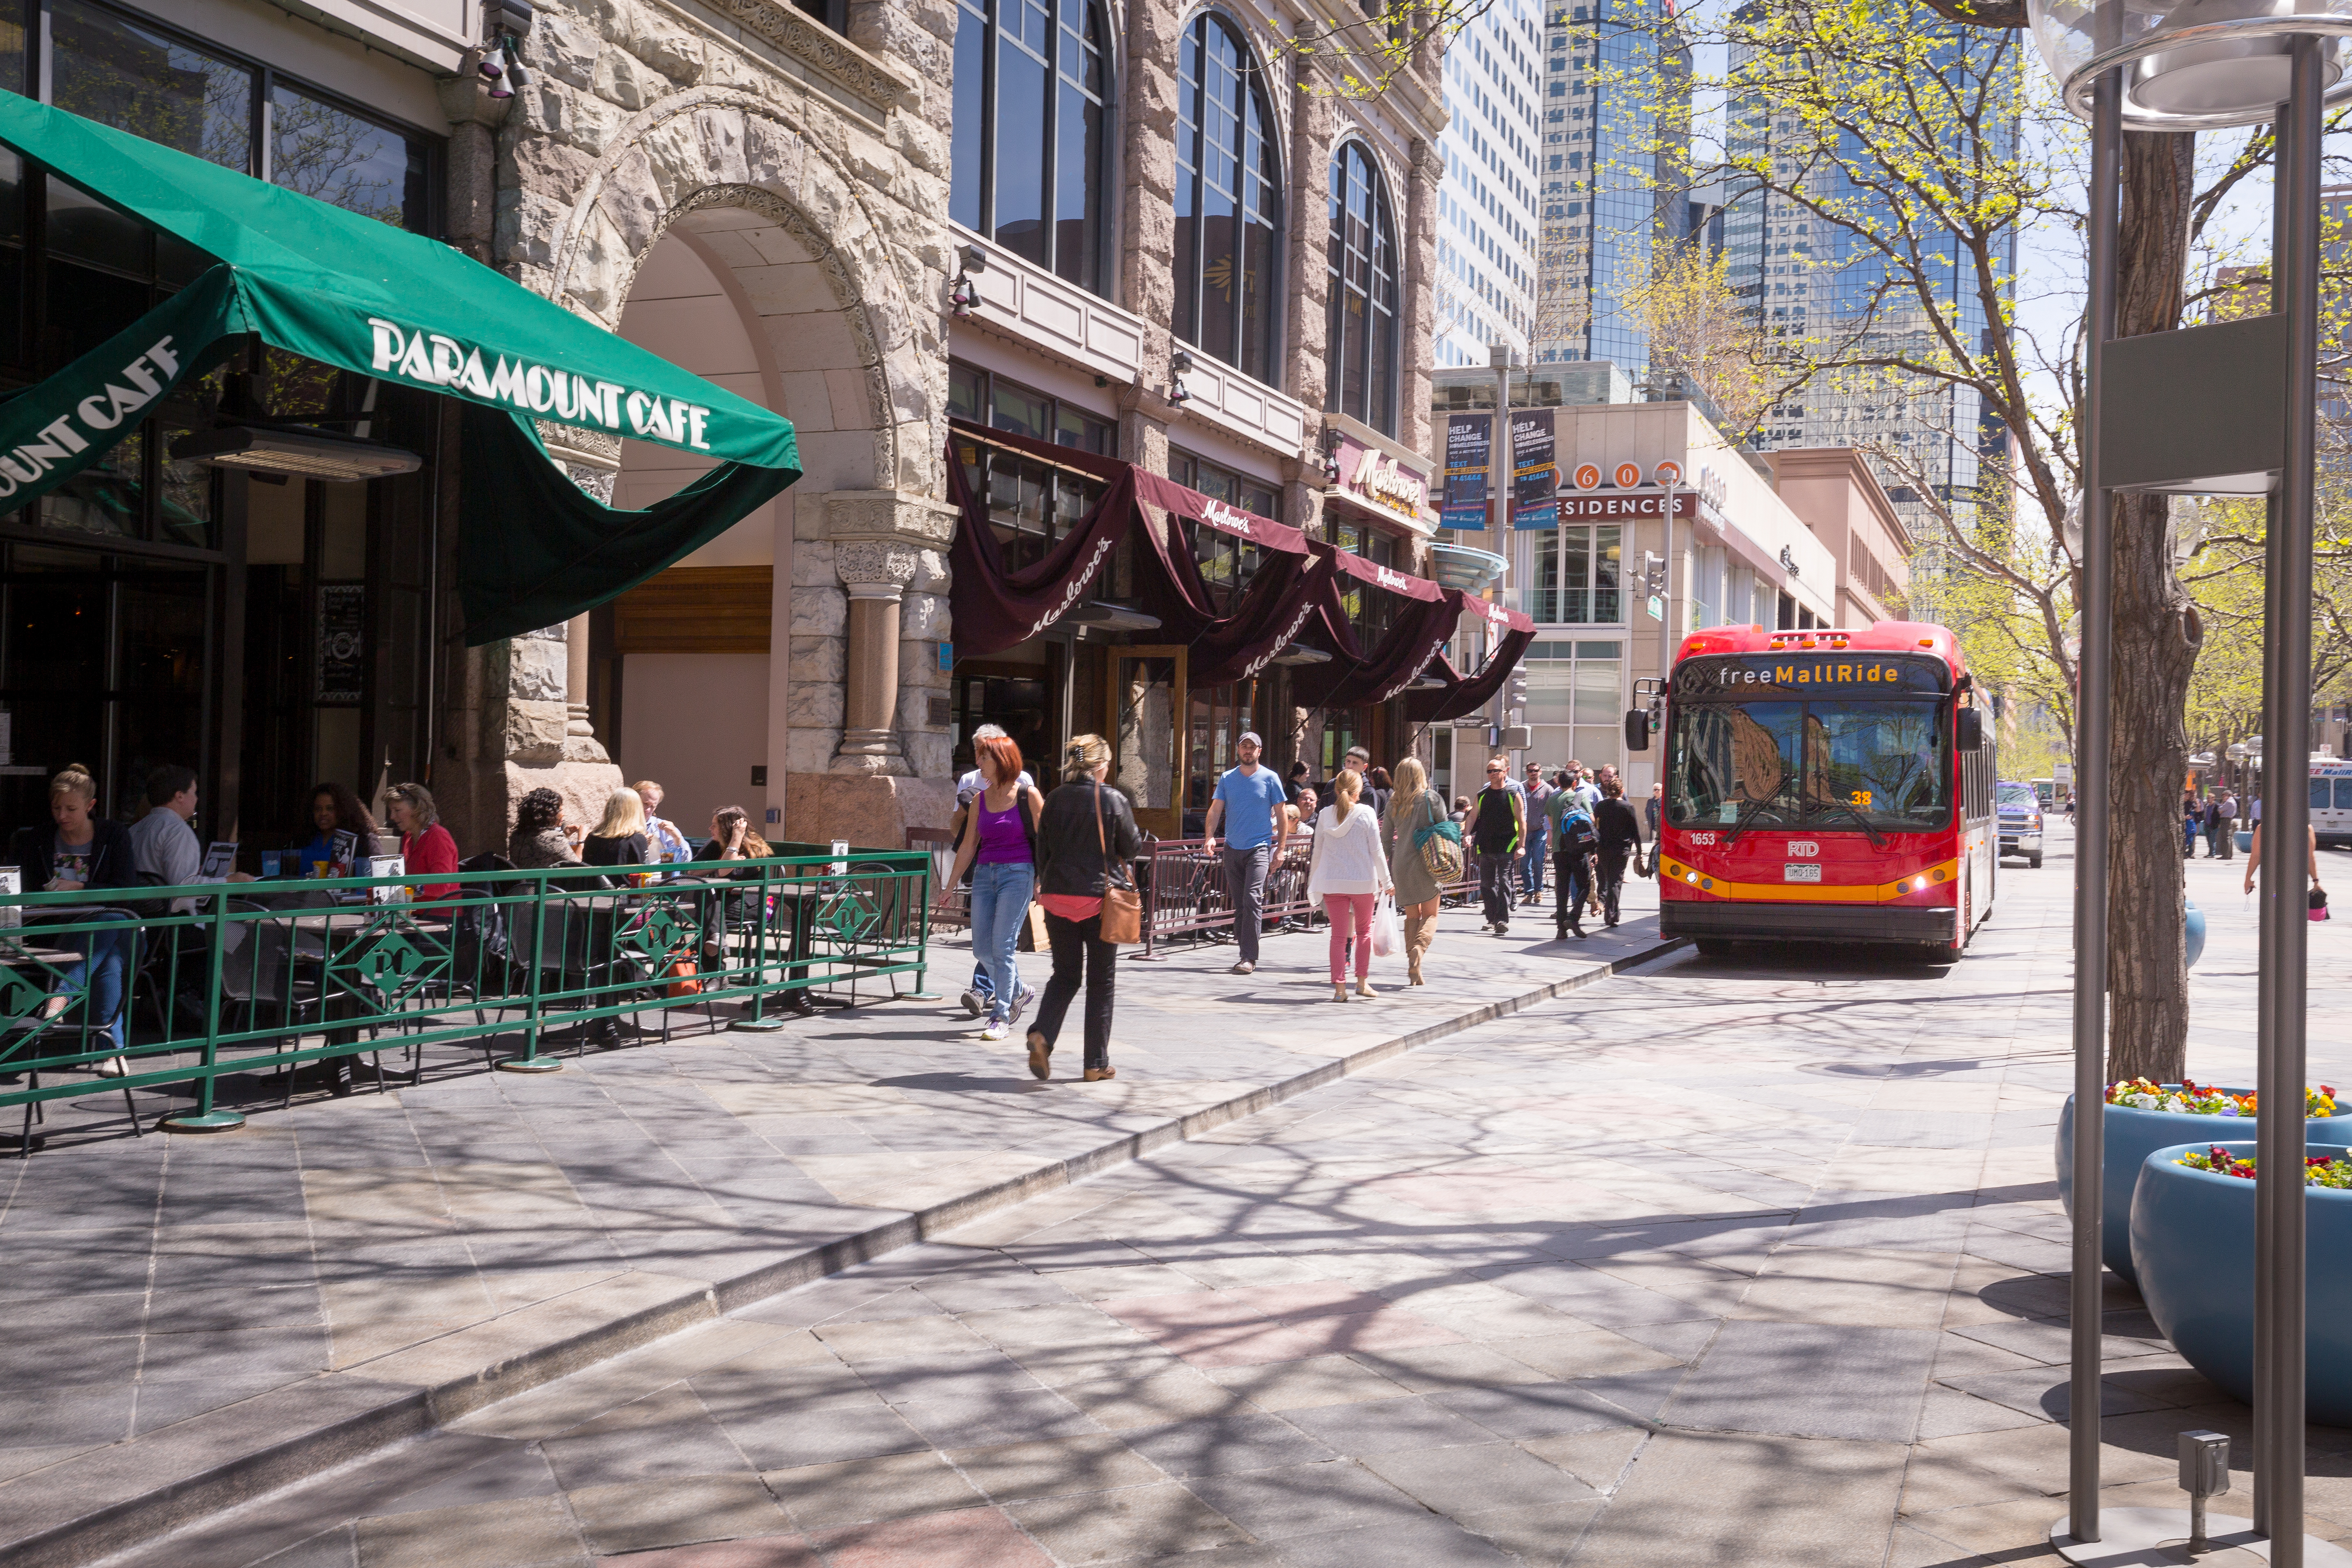 Denver 'Charges Up' Fleet for Key Downtown Route